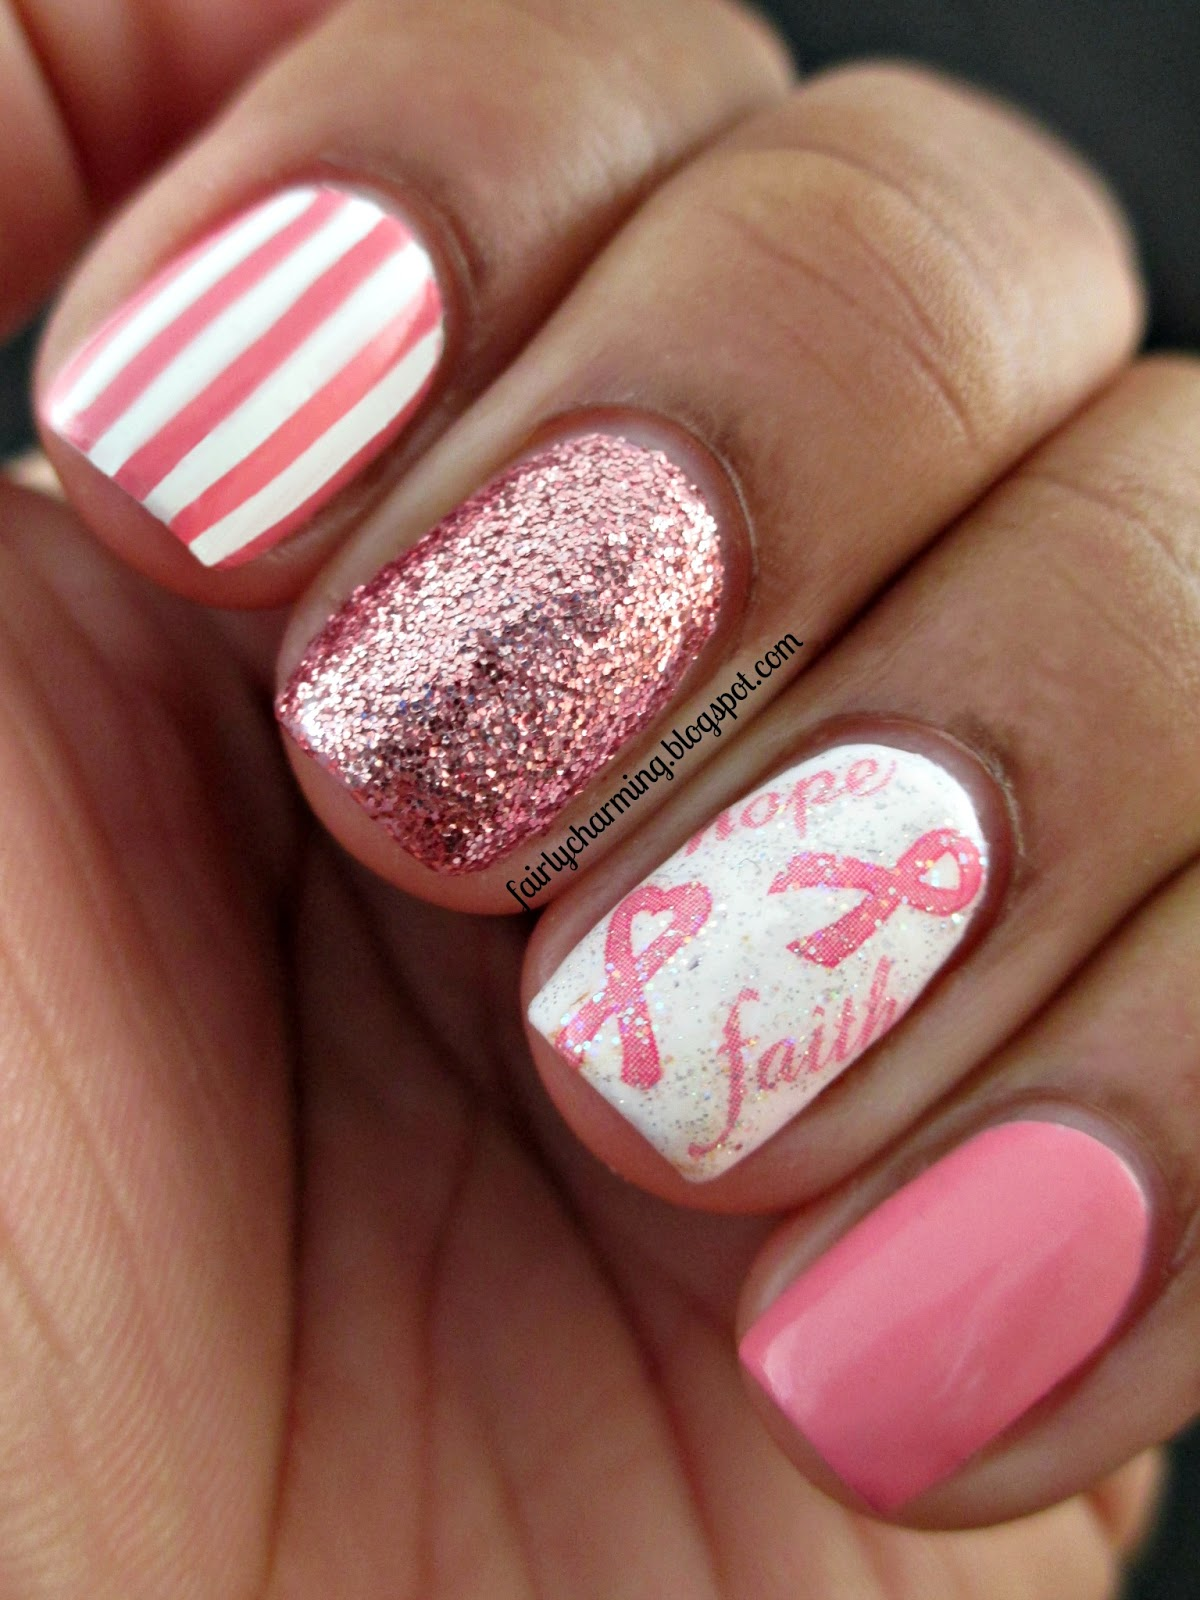 Nail Designs Products More: Fairly Charming: Joby Nail Art's Fight Against Breast Cancer